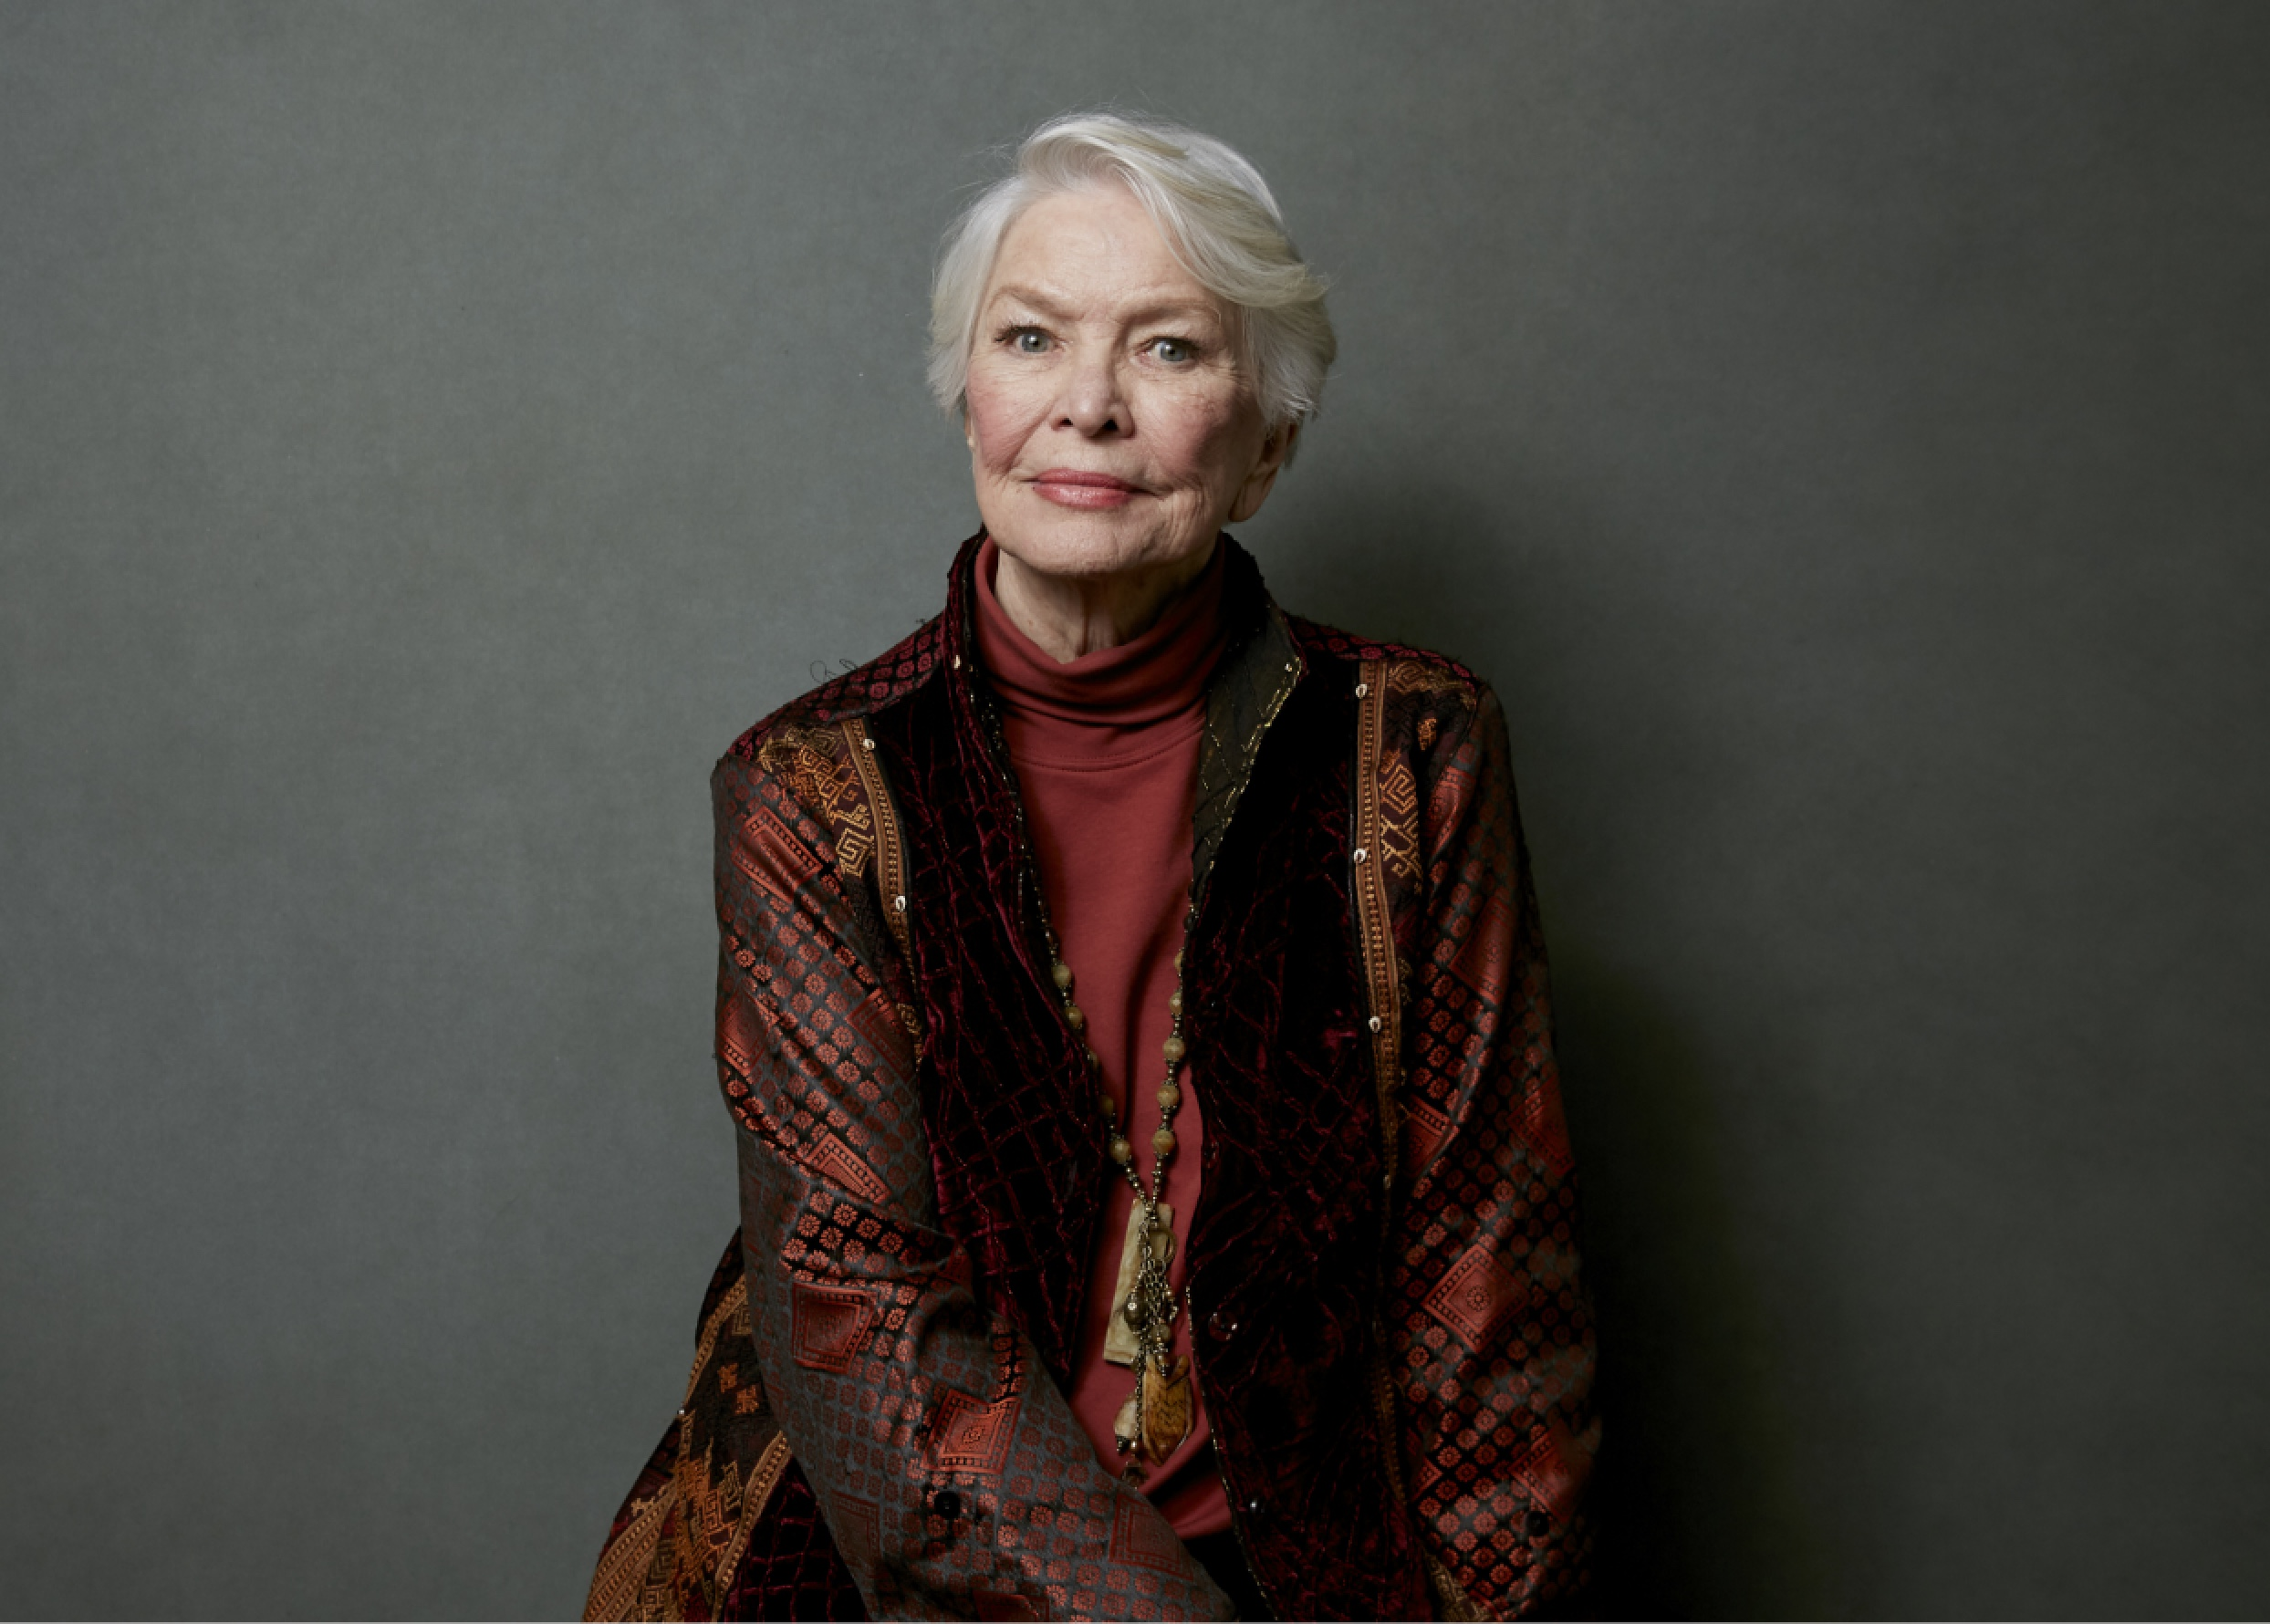 A portrait of Ellen Burstyn, smiling and looking elegant with close-cropped hair and a red jacket.